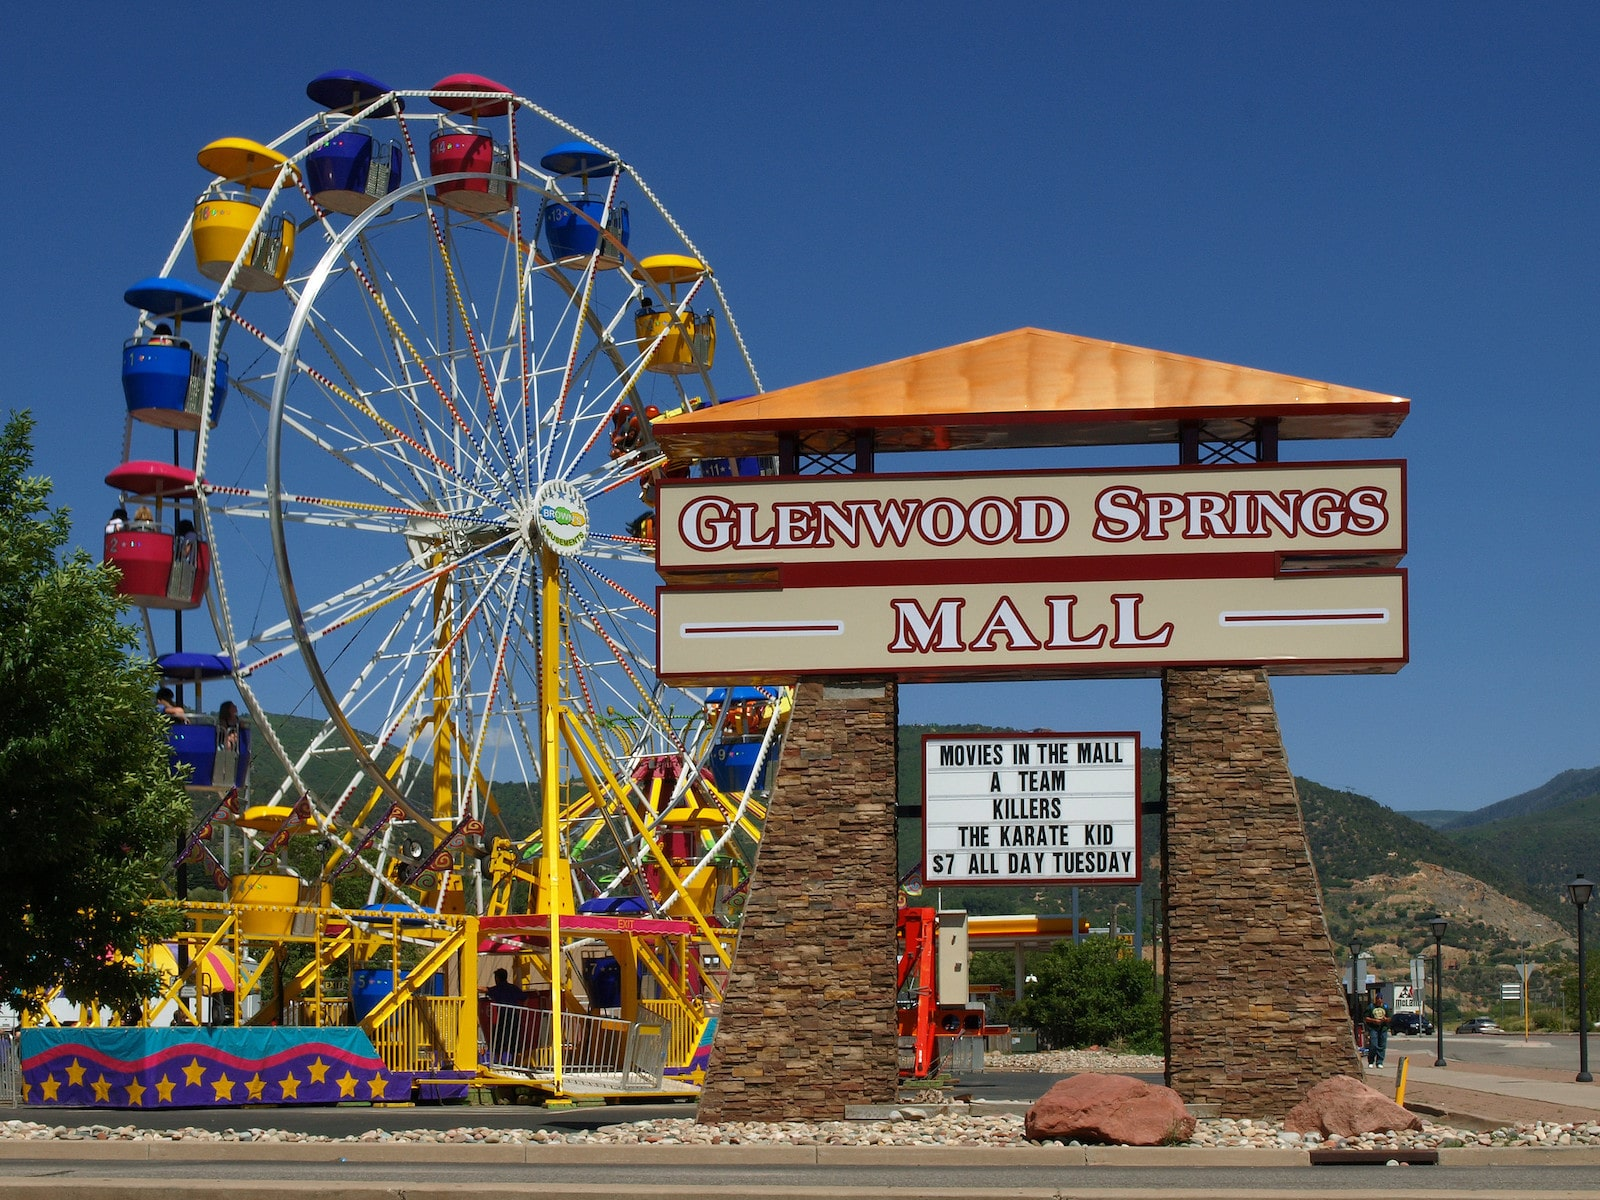 Image of the Strawberry Days carnival in Glenwood Springs, Colorado